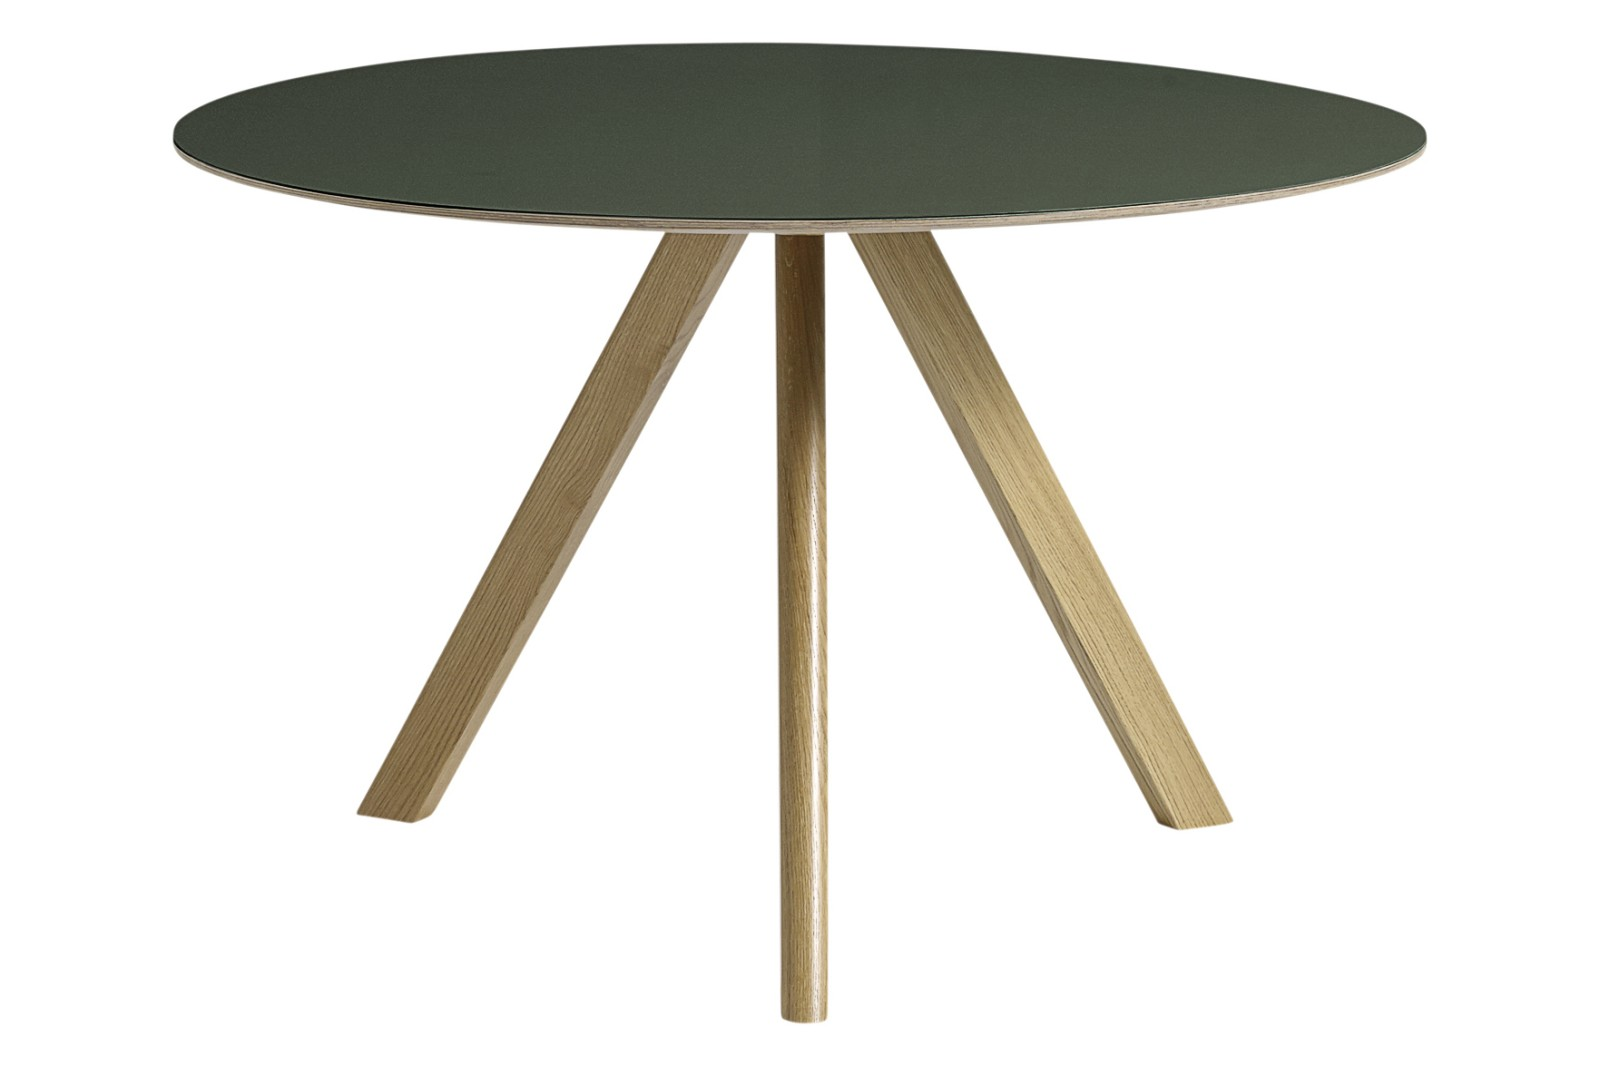 Copenhague Linoleum Top Round Dining Table CPH20 Clear Lacquered Oak Base, Green Top, Large